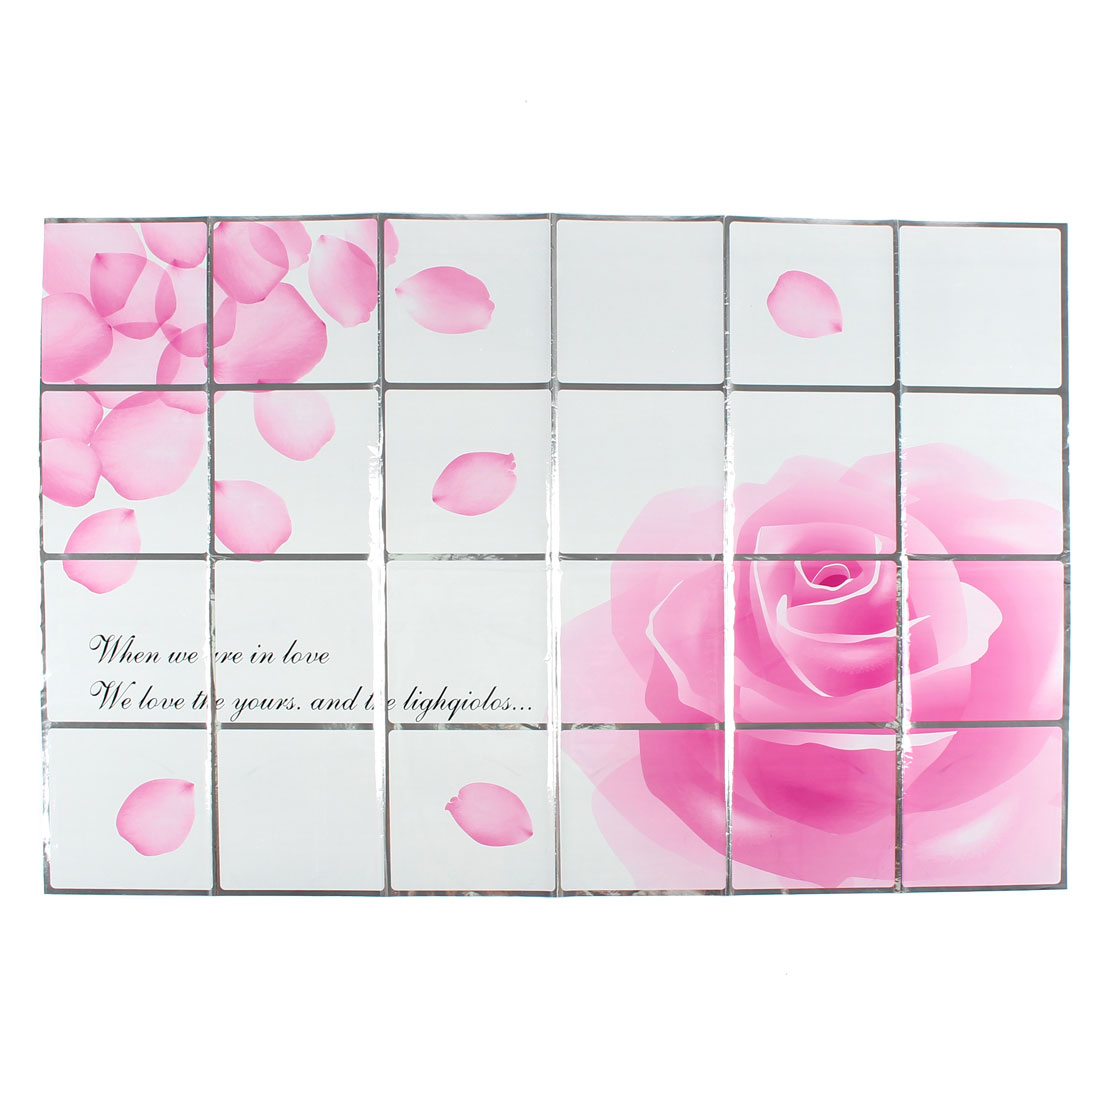 Kitchen Roses Pattern Removable Self-adhesive Oilproof Wall Window Sticker 90 x 60cm